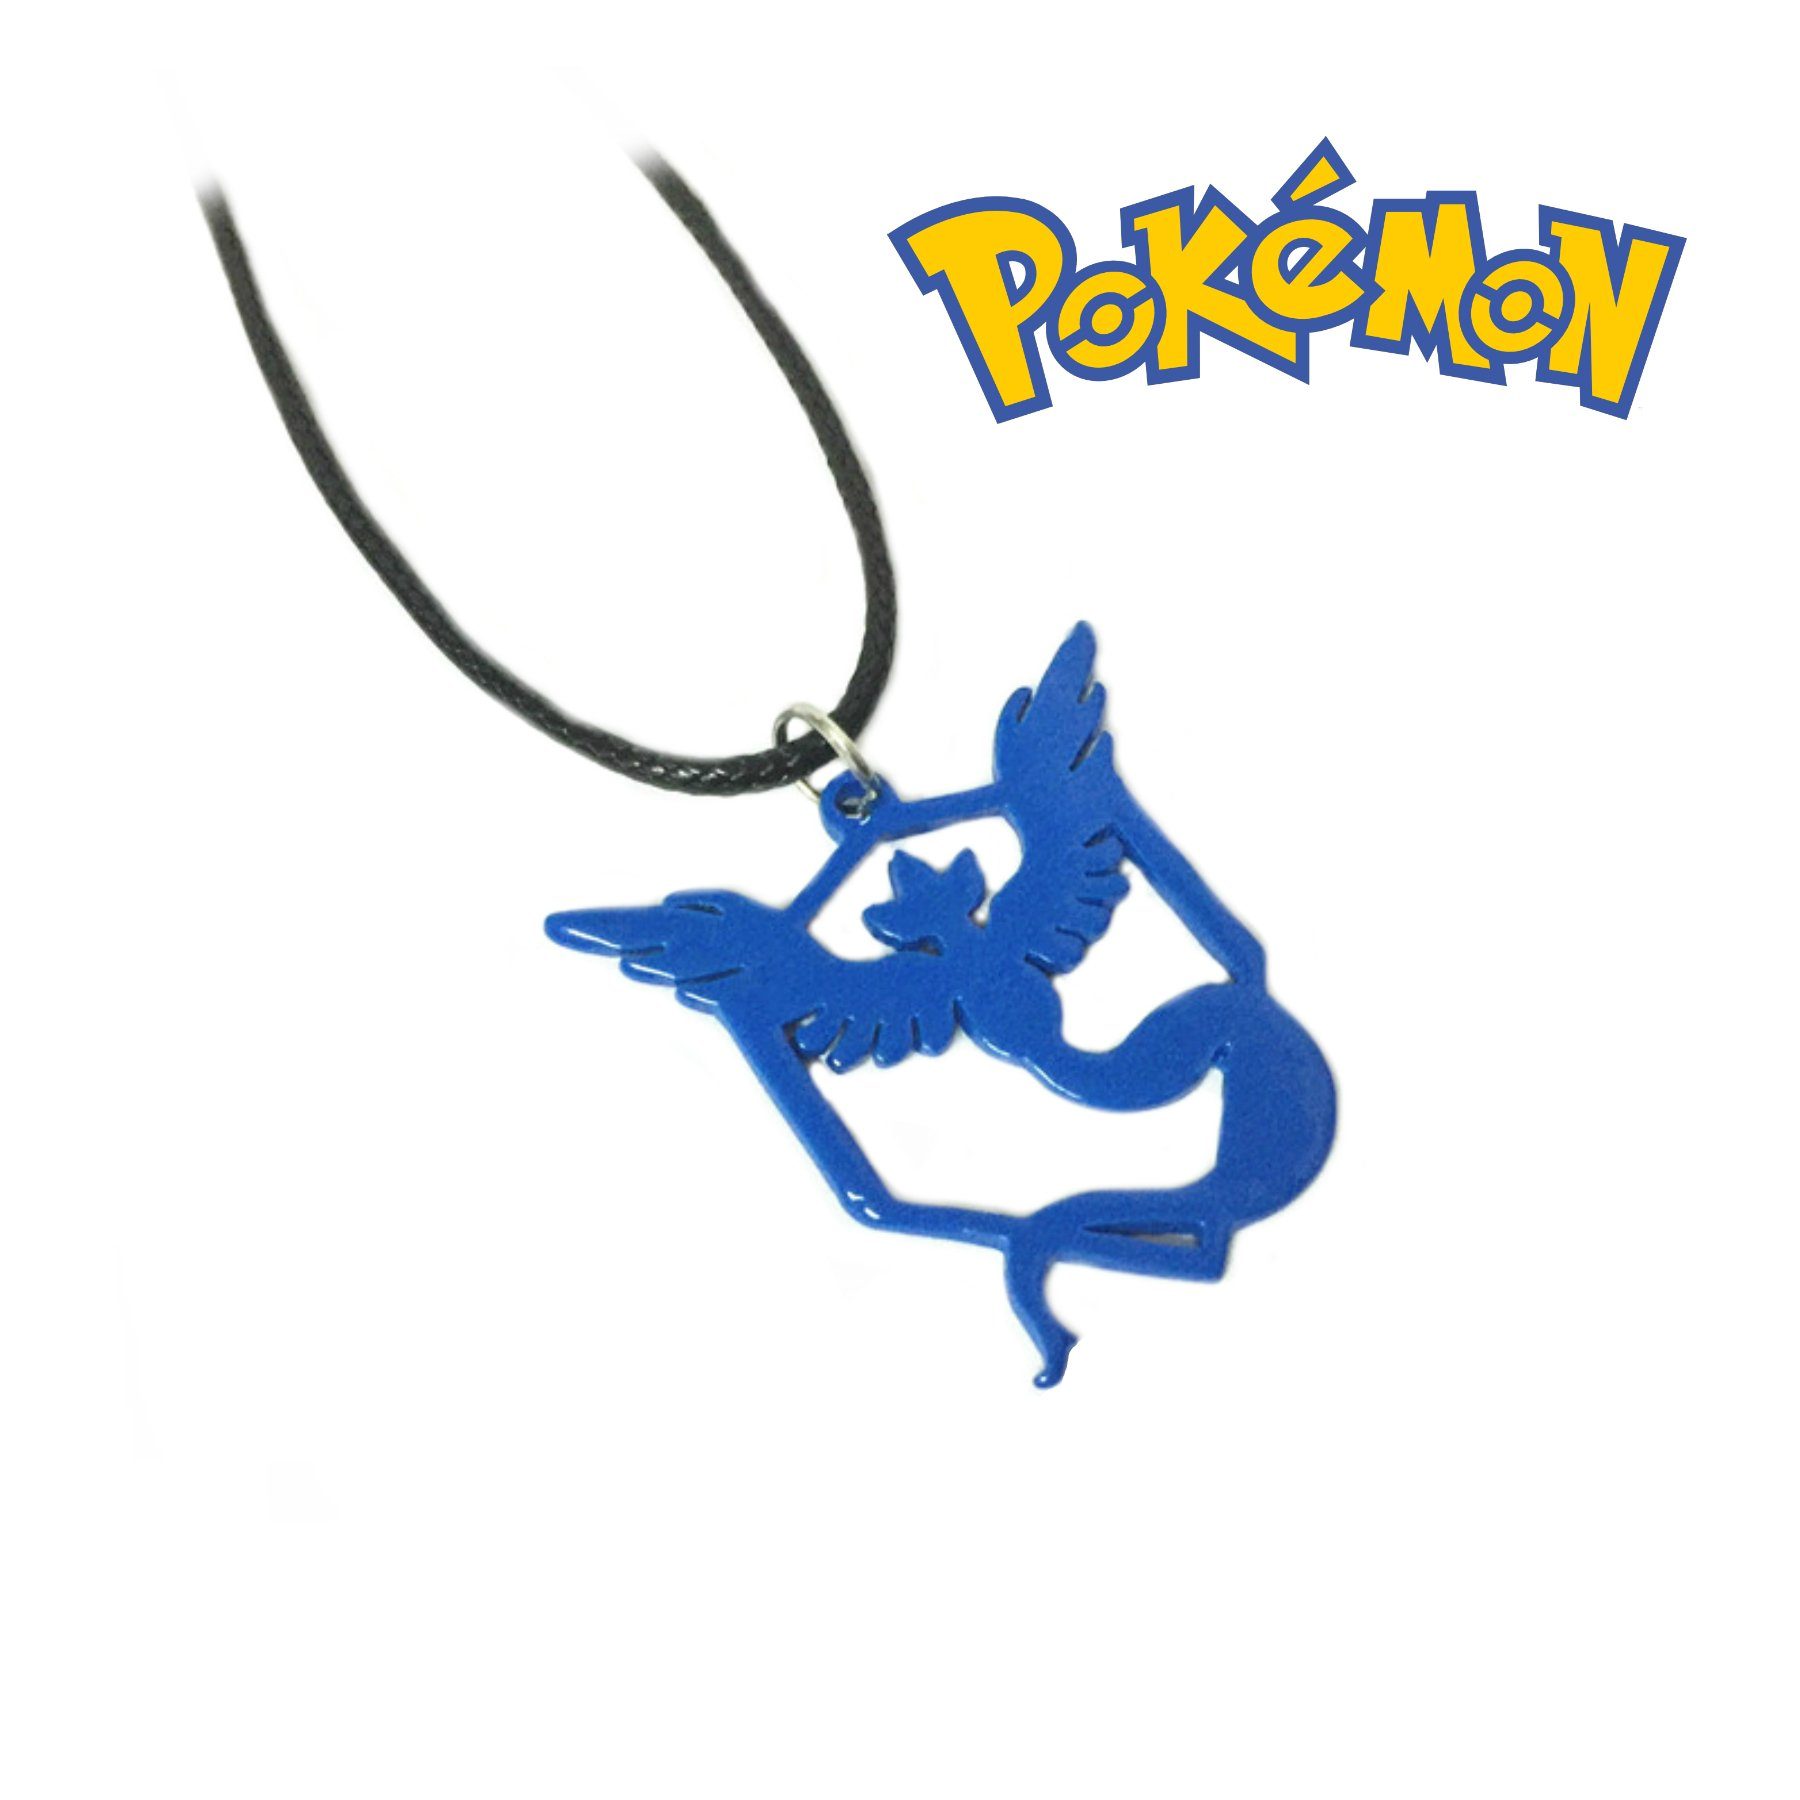 Pokemon Go Mystic Necklace Pendant Game Anime Cosplay by Athena Brands by Athena Brand (Image #2)